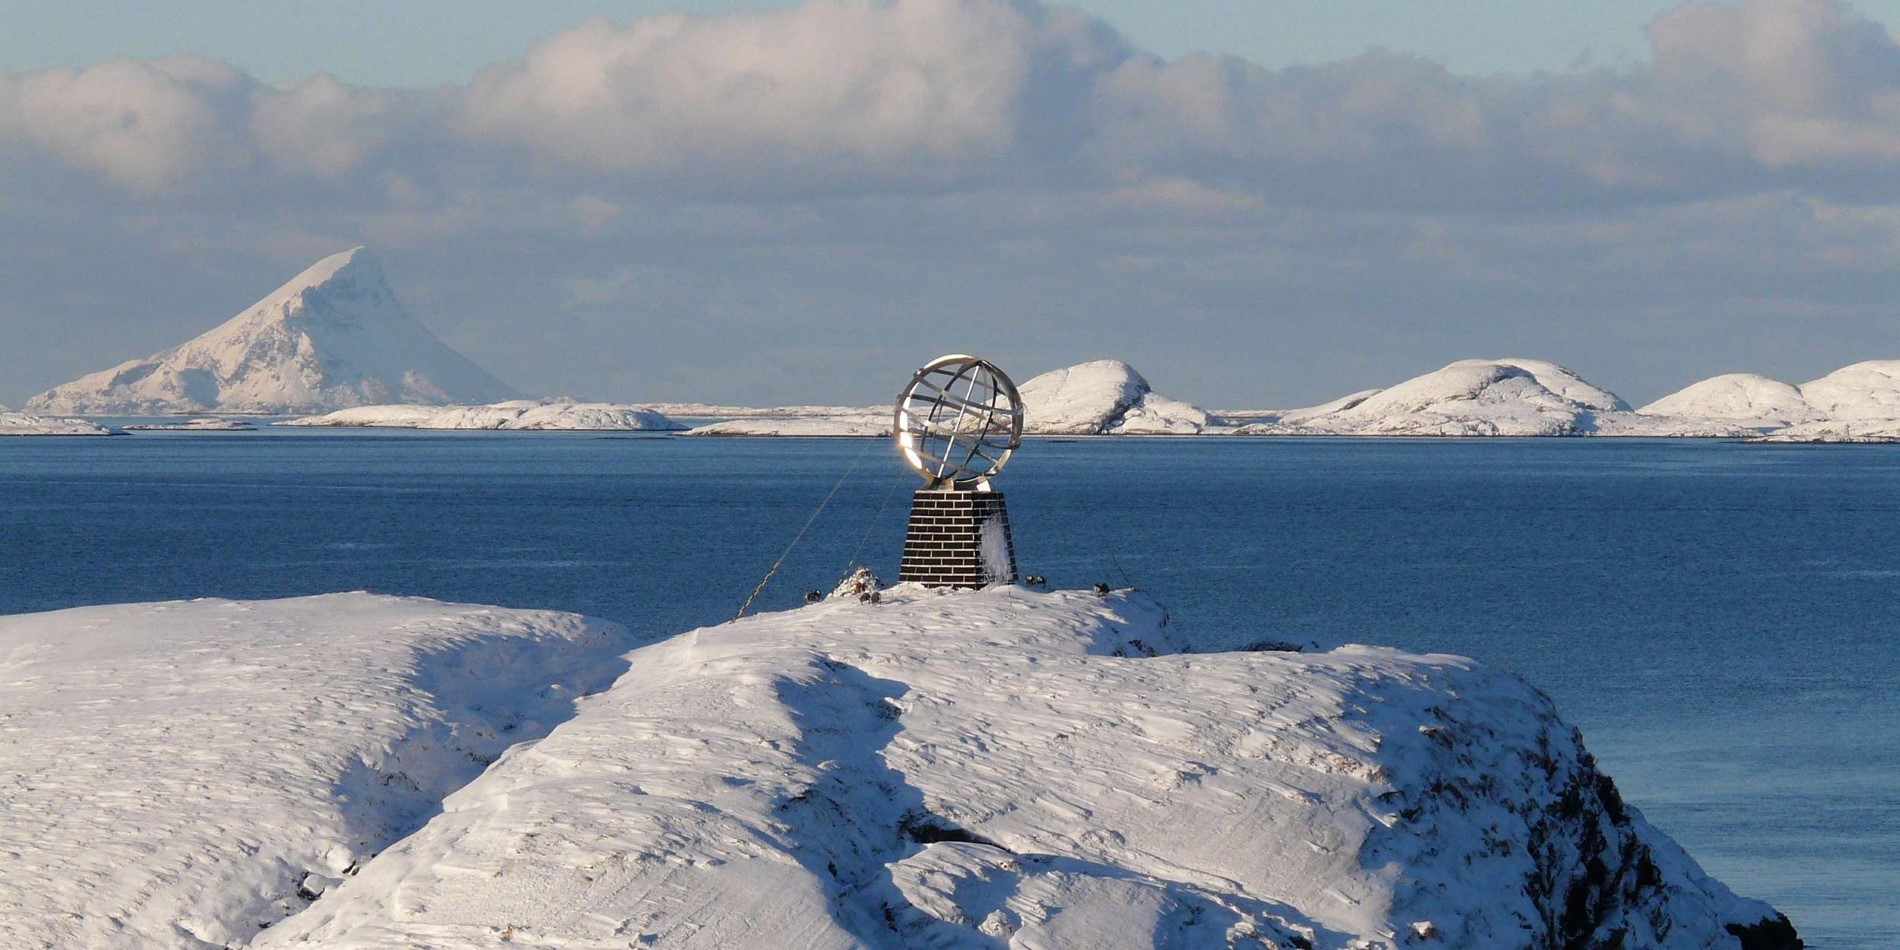 The Arctic Circle monument in winter